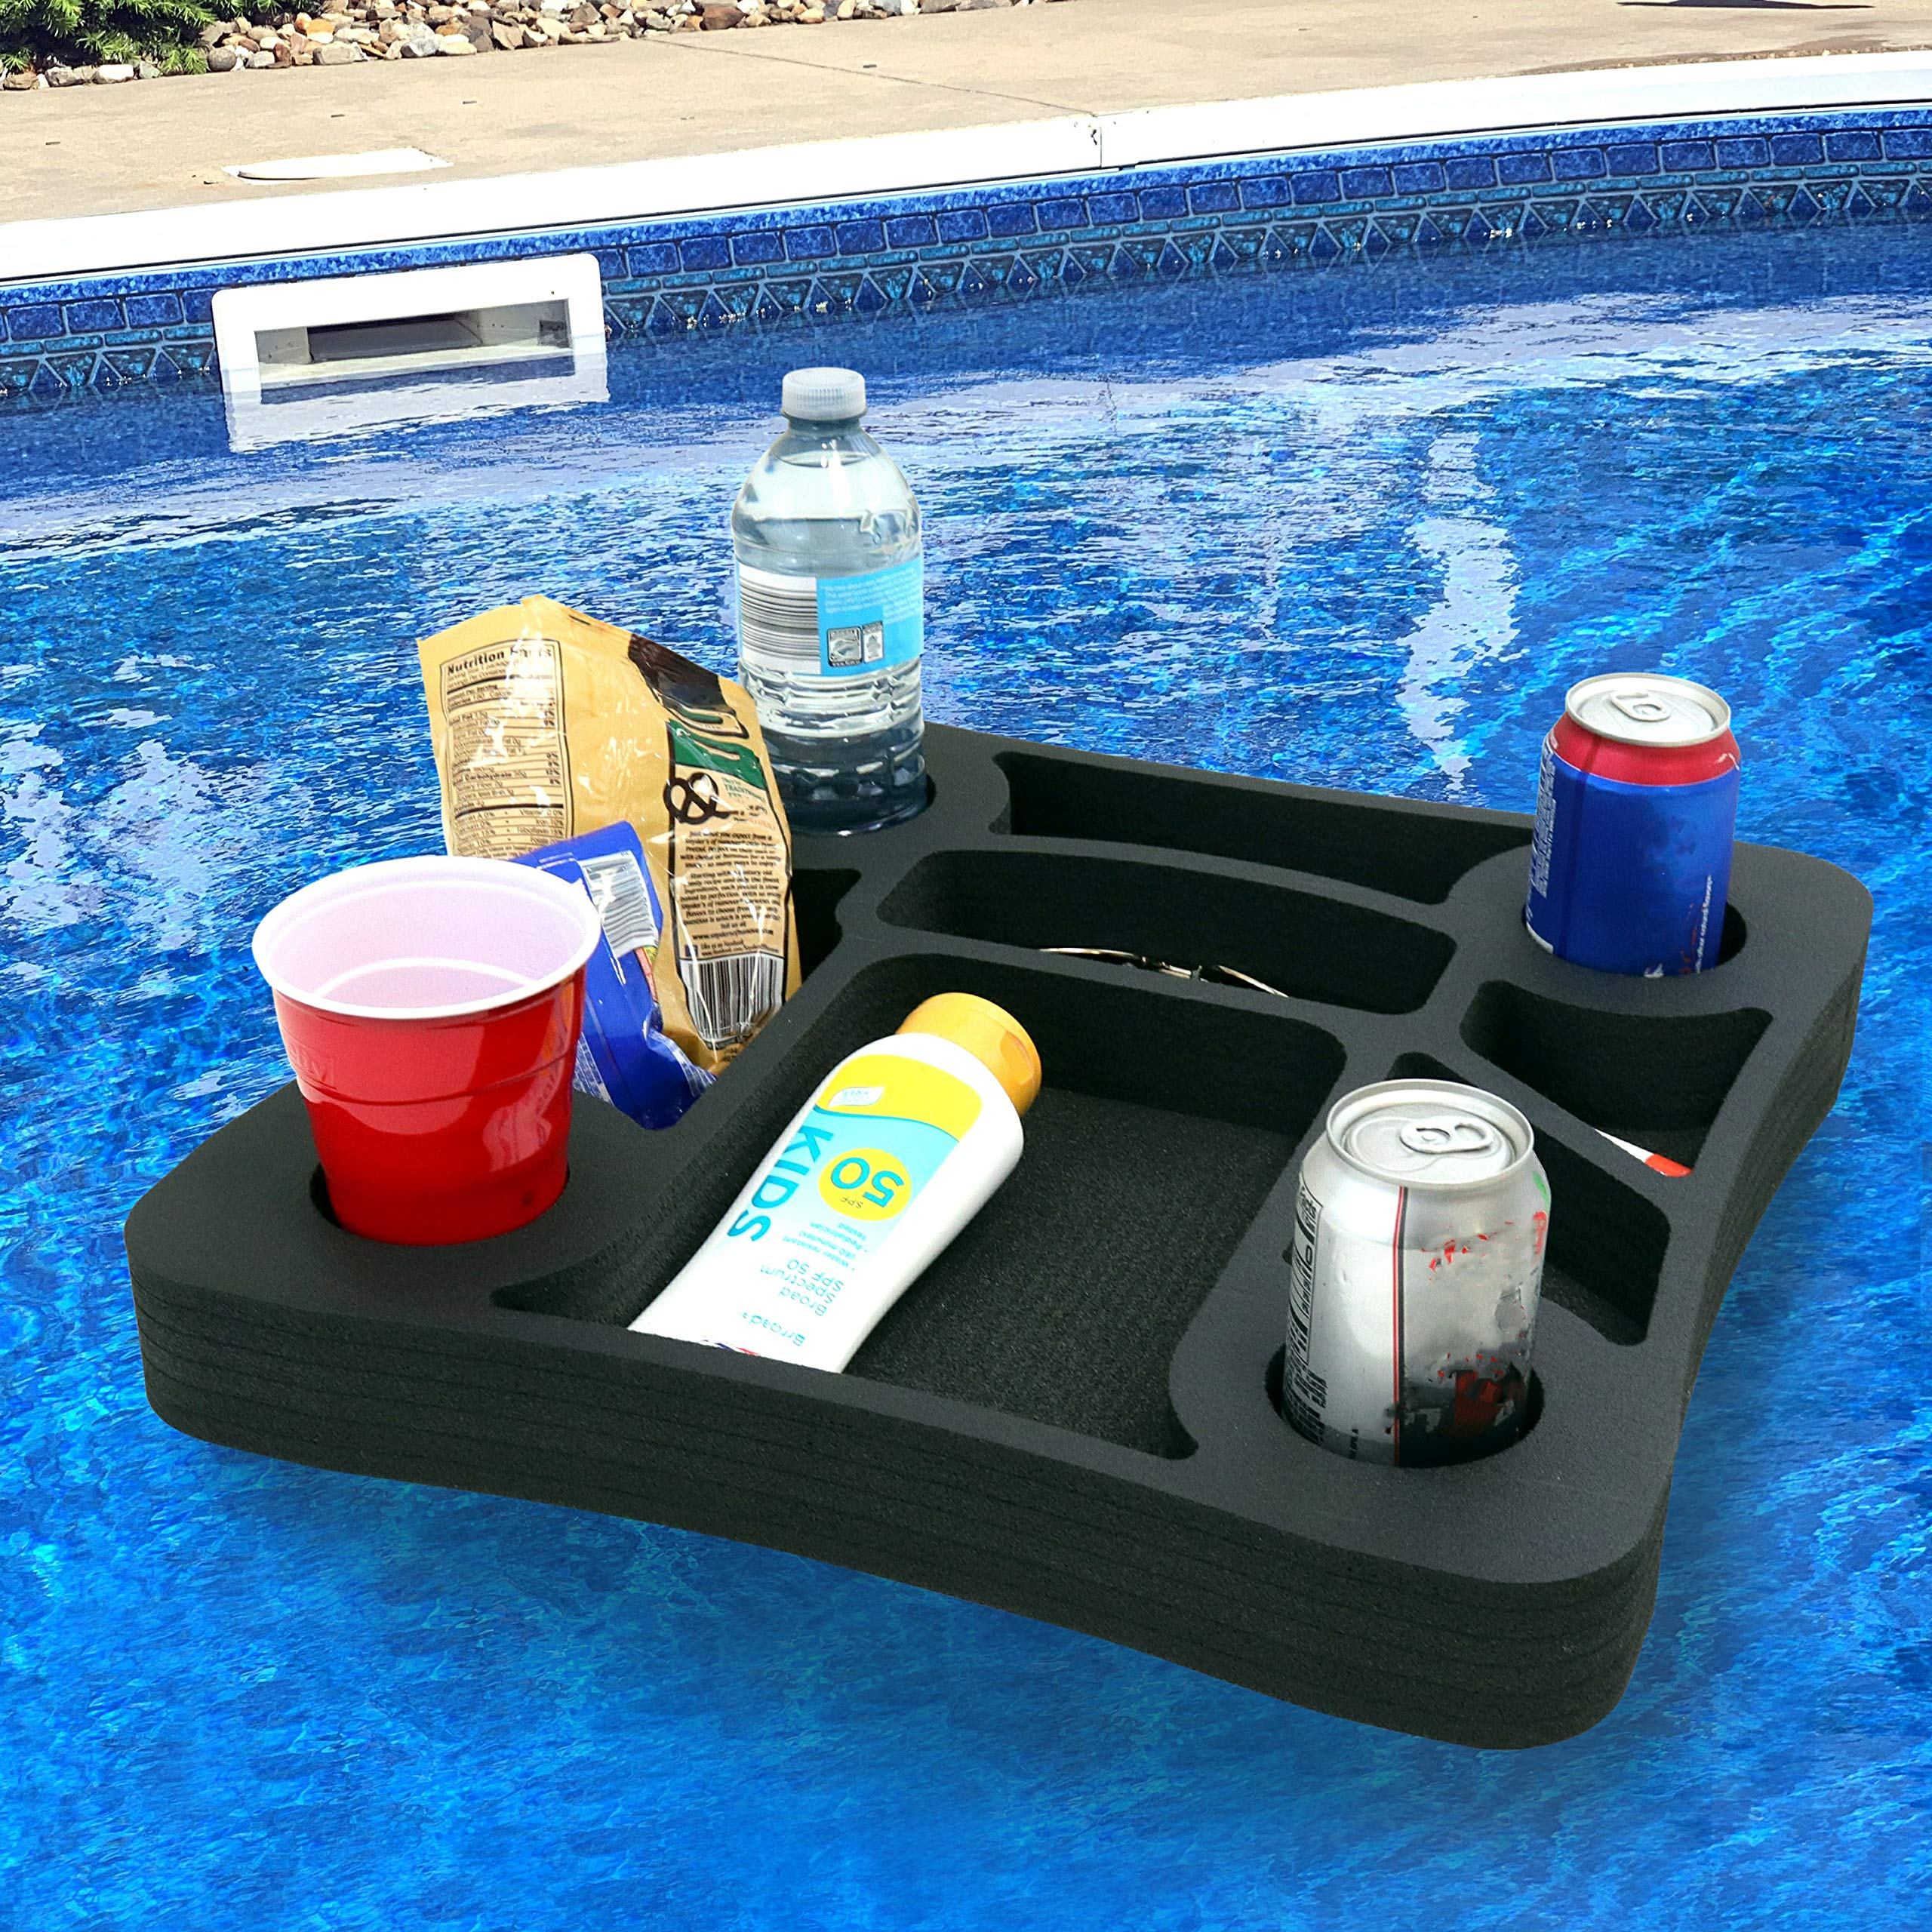 Polar Whale Floating Drink Holder Refreshment Table Tray for Pool or Beach Party Float Lounge Durable Foam 17.5 Inches Large 10 Compartments UV Resistant Made in USA by Polar Whale